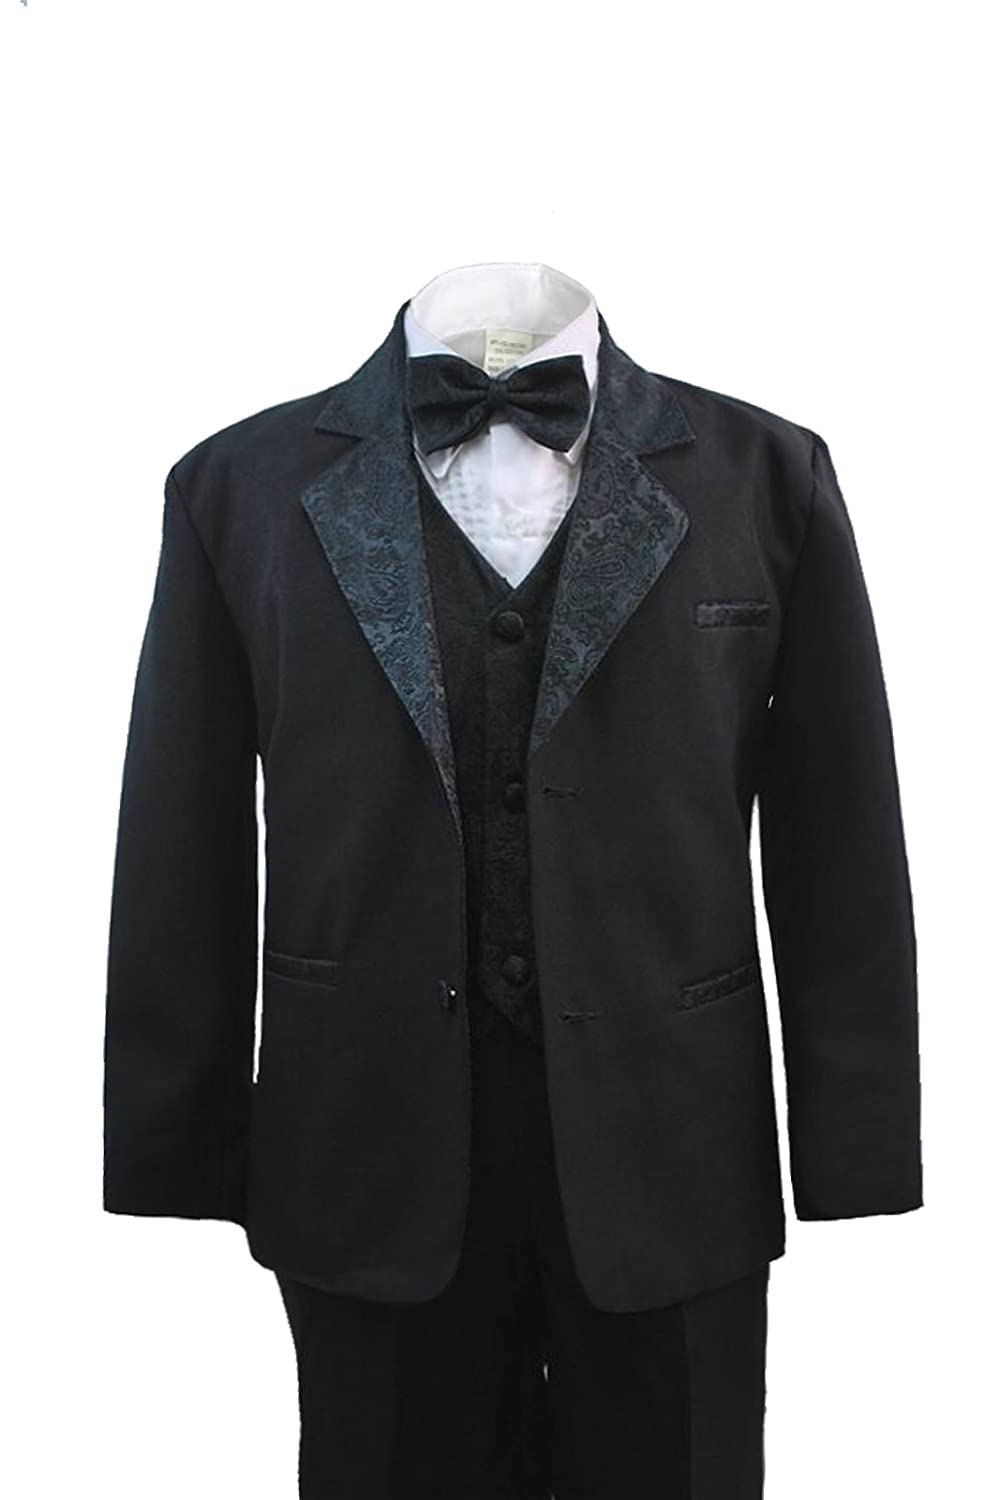 Unotux Boy Black Formal Suit Tuxedo with Paisley Jacquard Lapel S-20